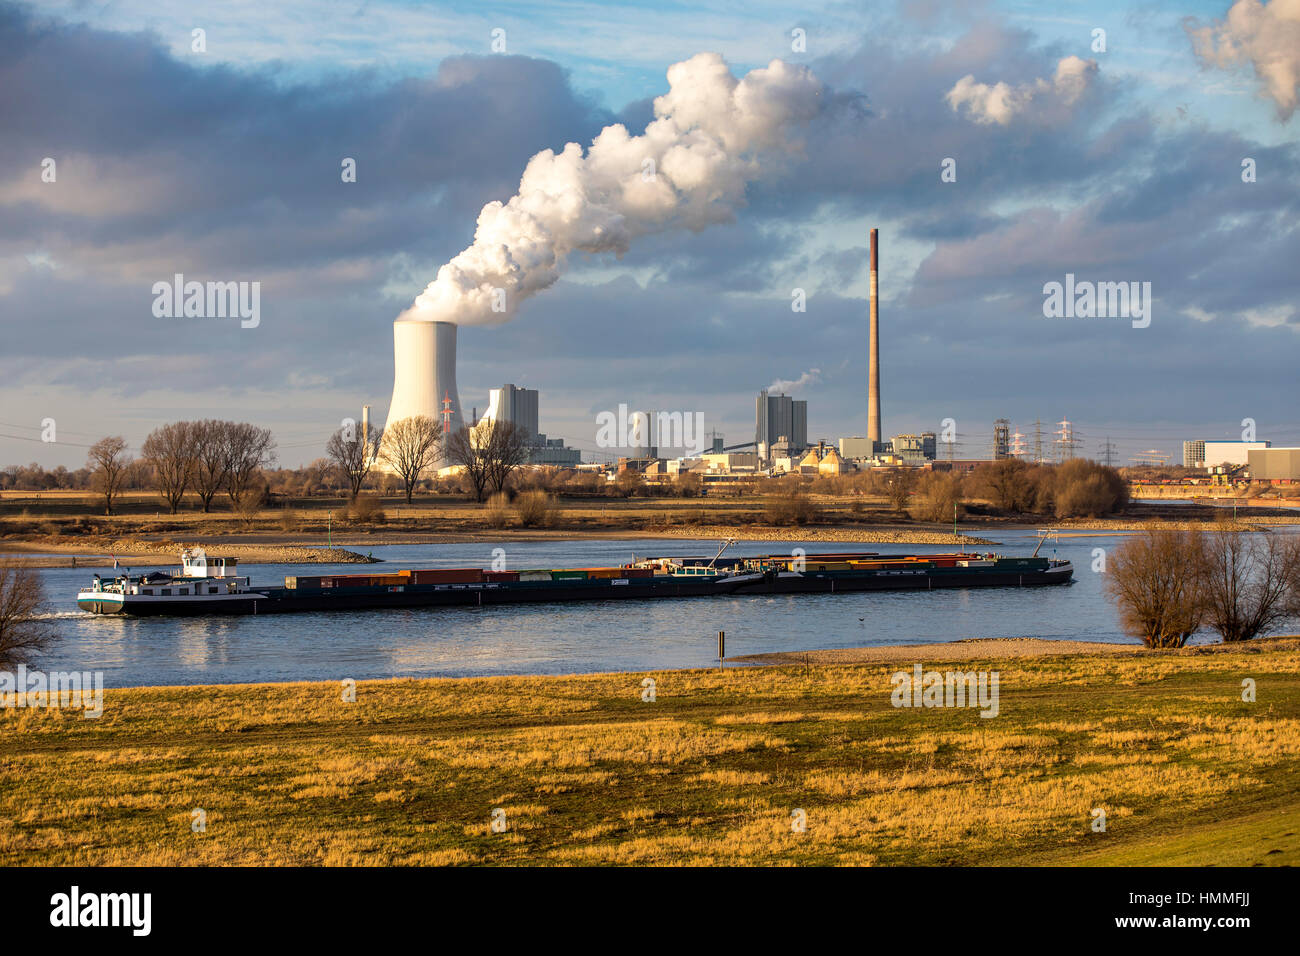 Cooling tower of the coal-fired power station Duisburg Walsum, Block 10, Freightship, Germany, Duisburg, - Stock Image